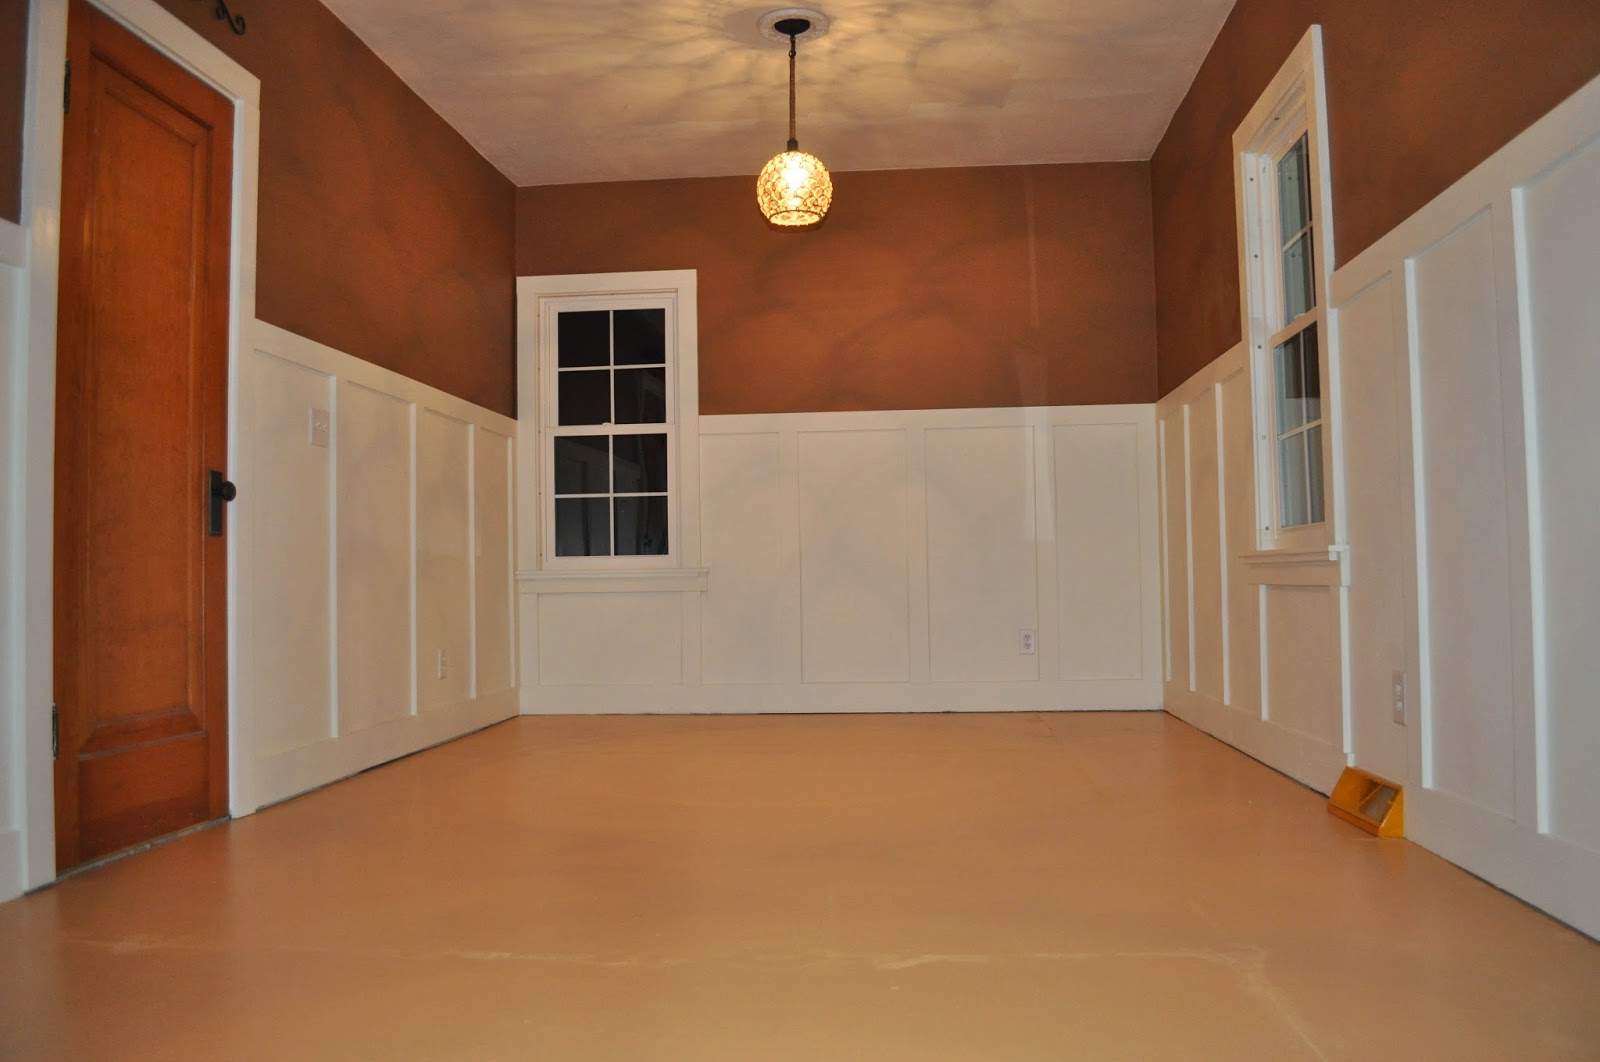 wainscoting, bedroom reno, bedroom redo, white paint, chocolate paint, lighting, menards, new windows, jeld wen windows, lighting, replacing fans, fans, lighting install